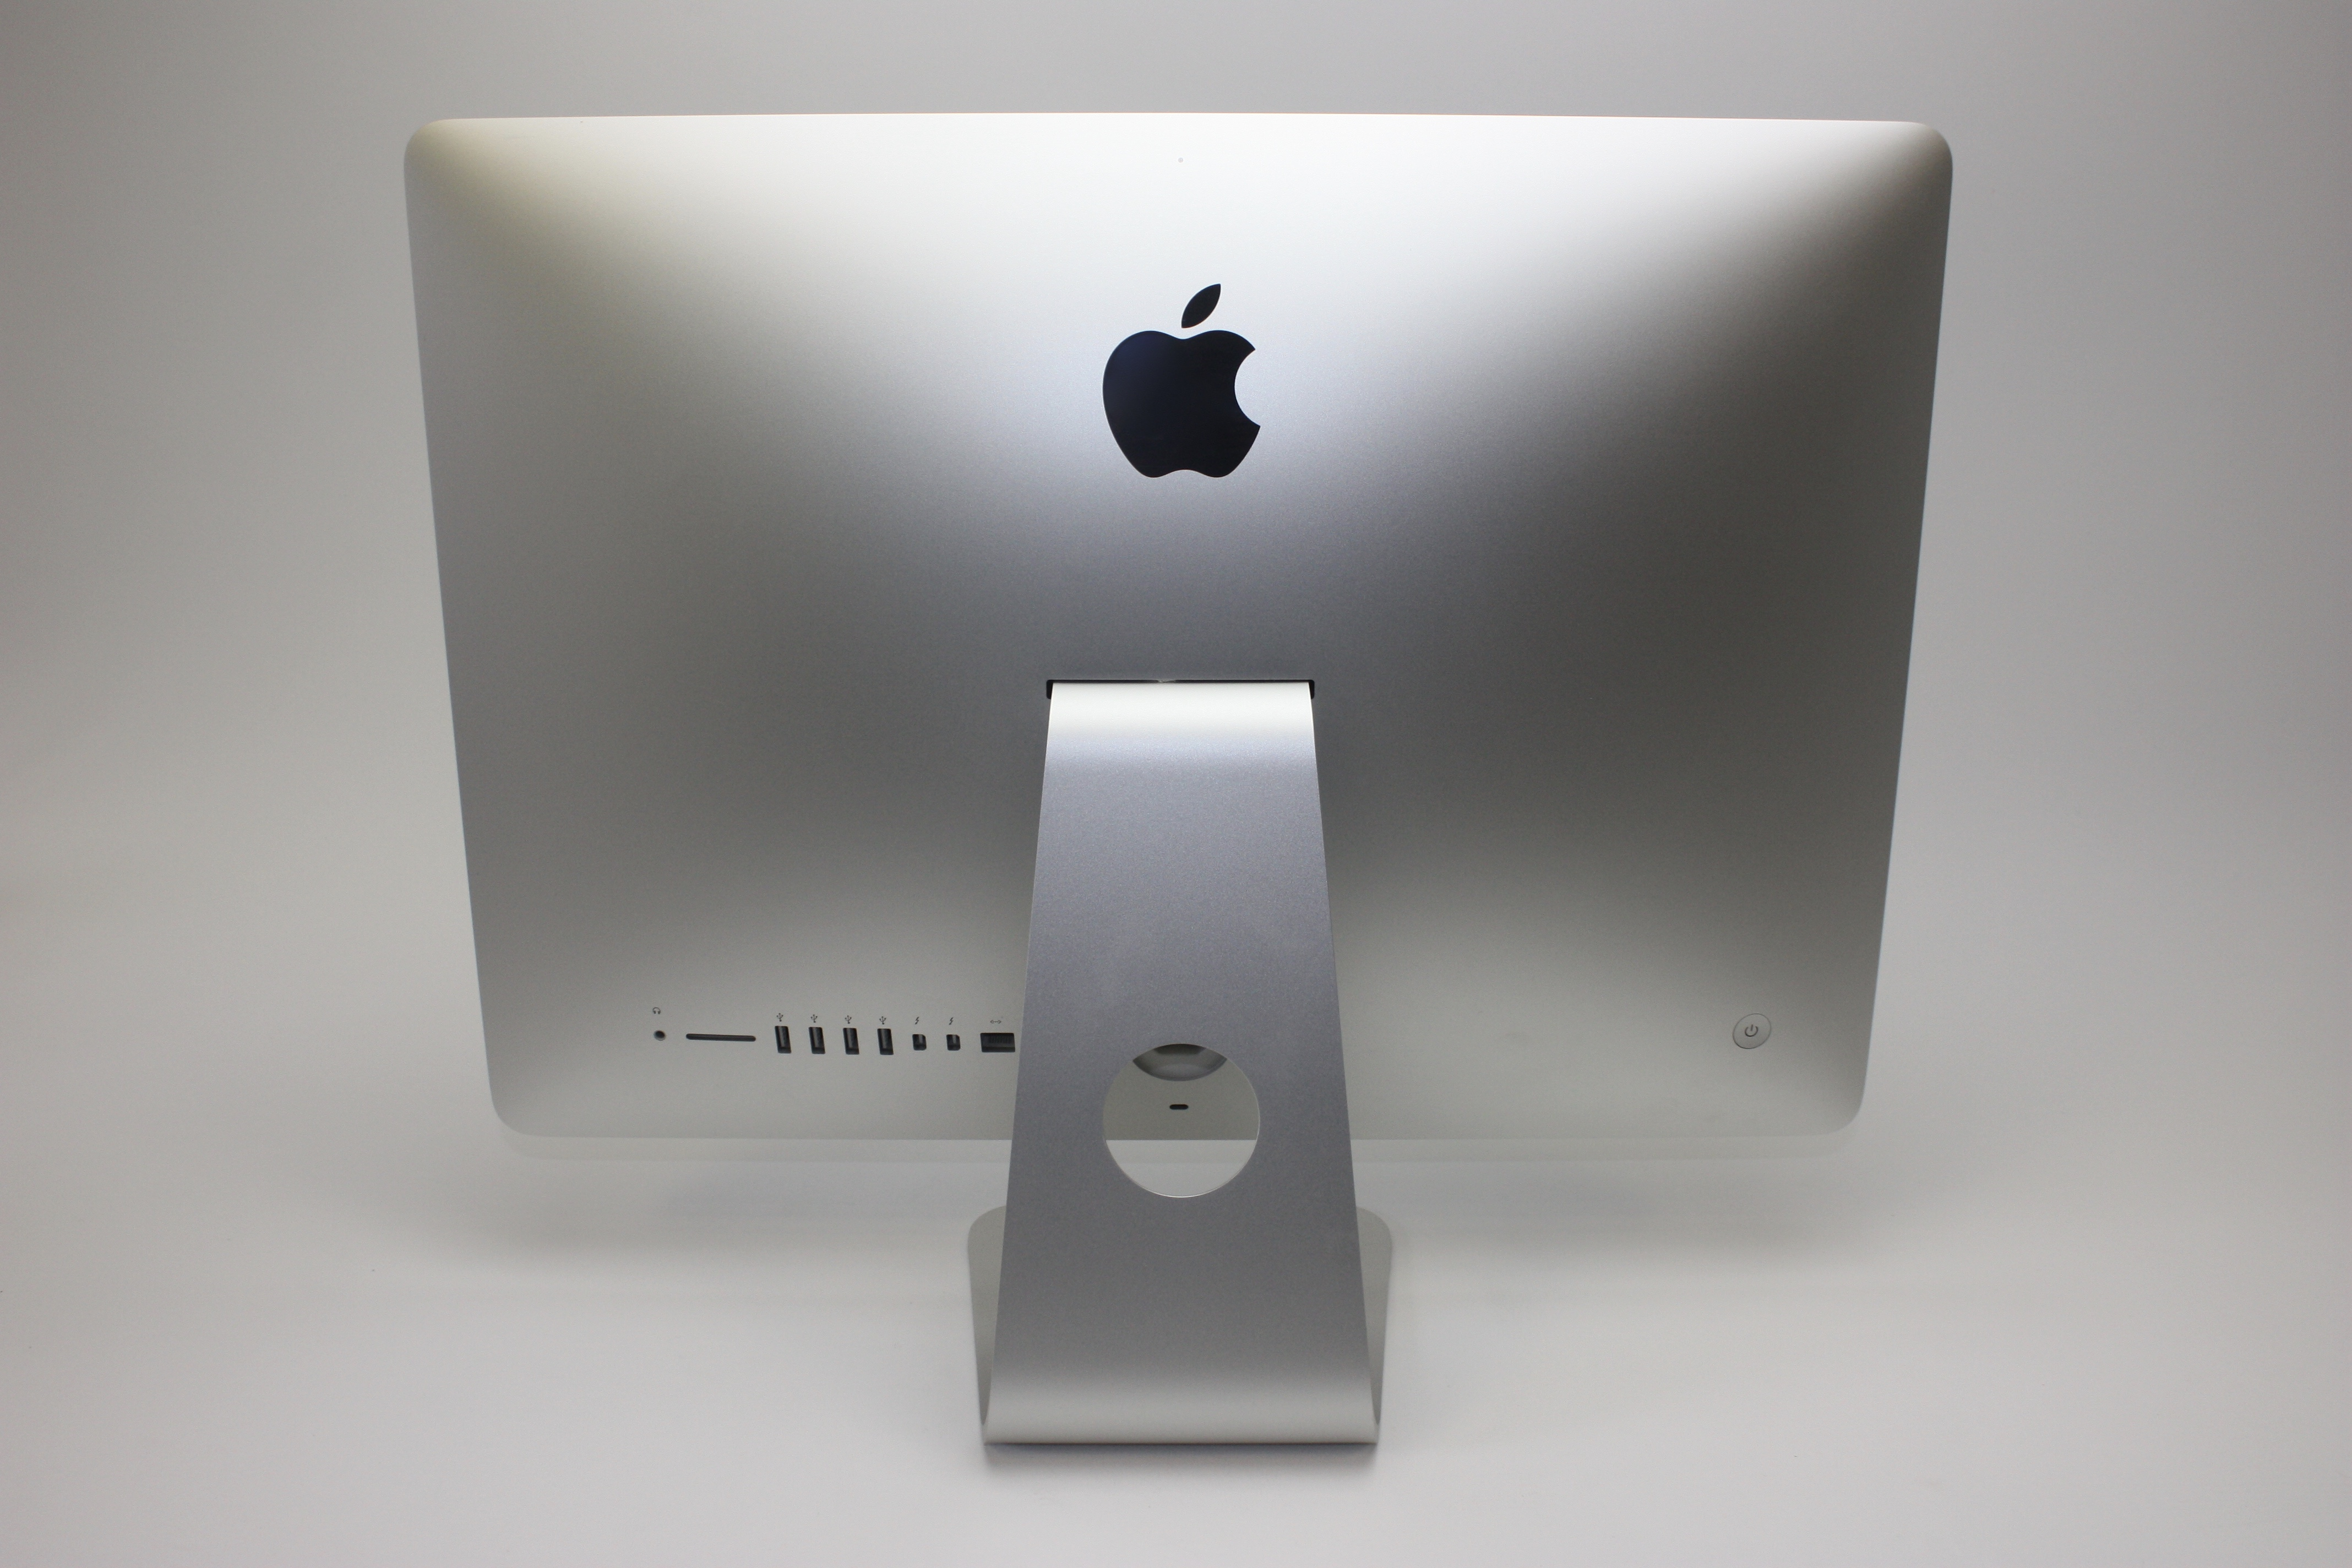 iMac (21.5-inch Late 2013), 2.9 GHz Intel Core i5, 8 GB 1600 MHz DDR3, 1 TB SATA Disk, Product age: 34 months, image 4